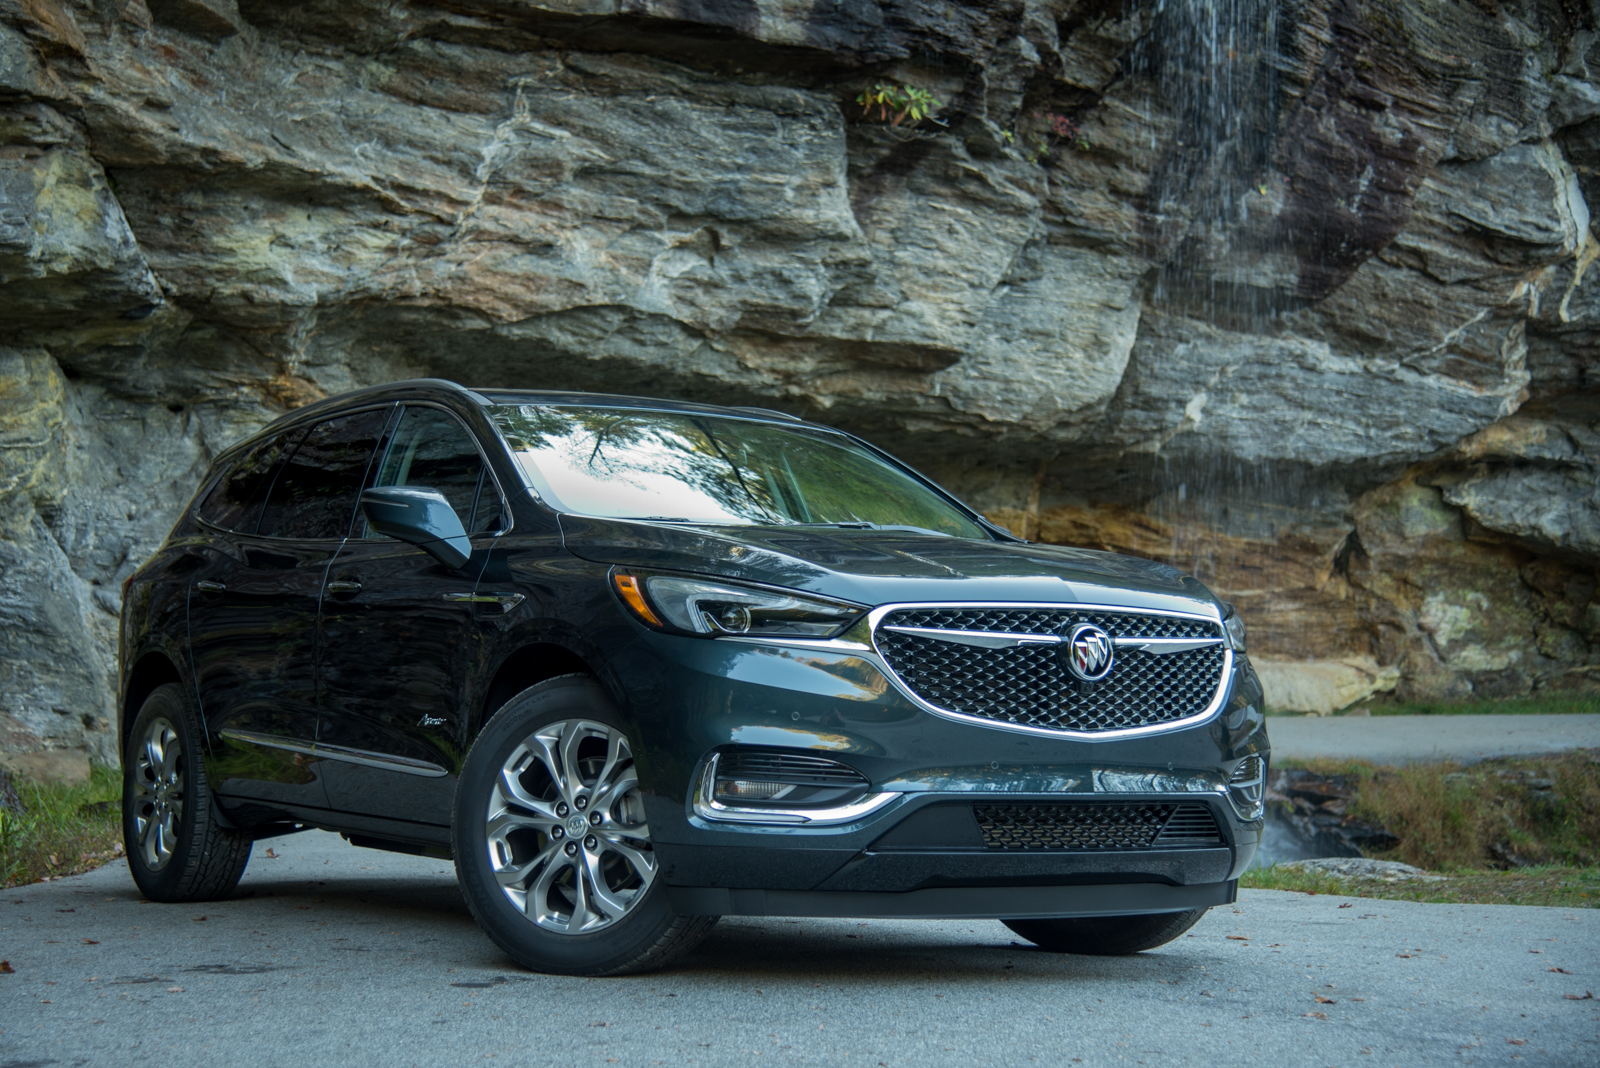 reviews used enclave canada buick research front models cars new en quarter three trend motor